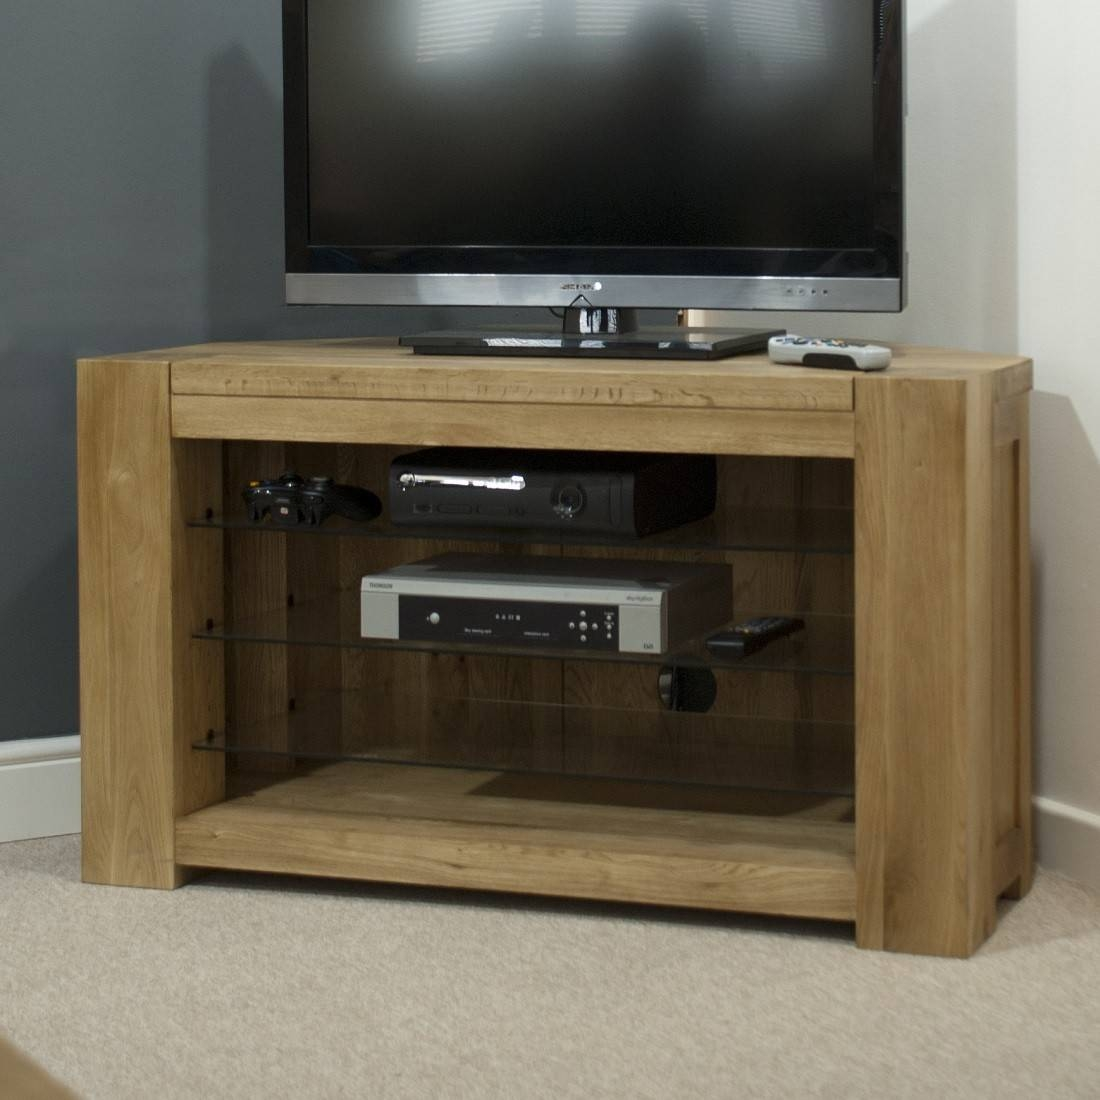 15 best oak tv stands for flat screens. Black Bedroom Furniture Sets. Home Design Ideas